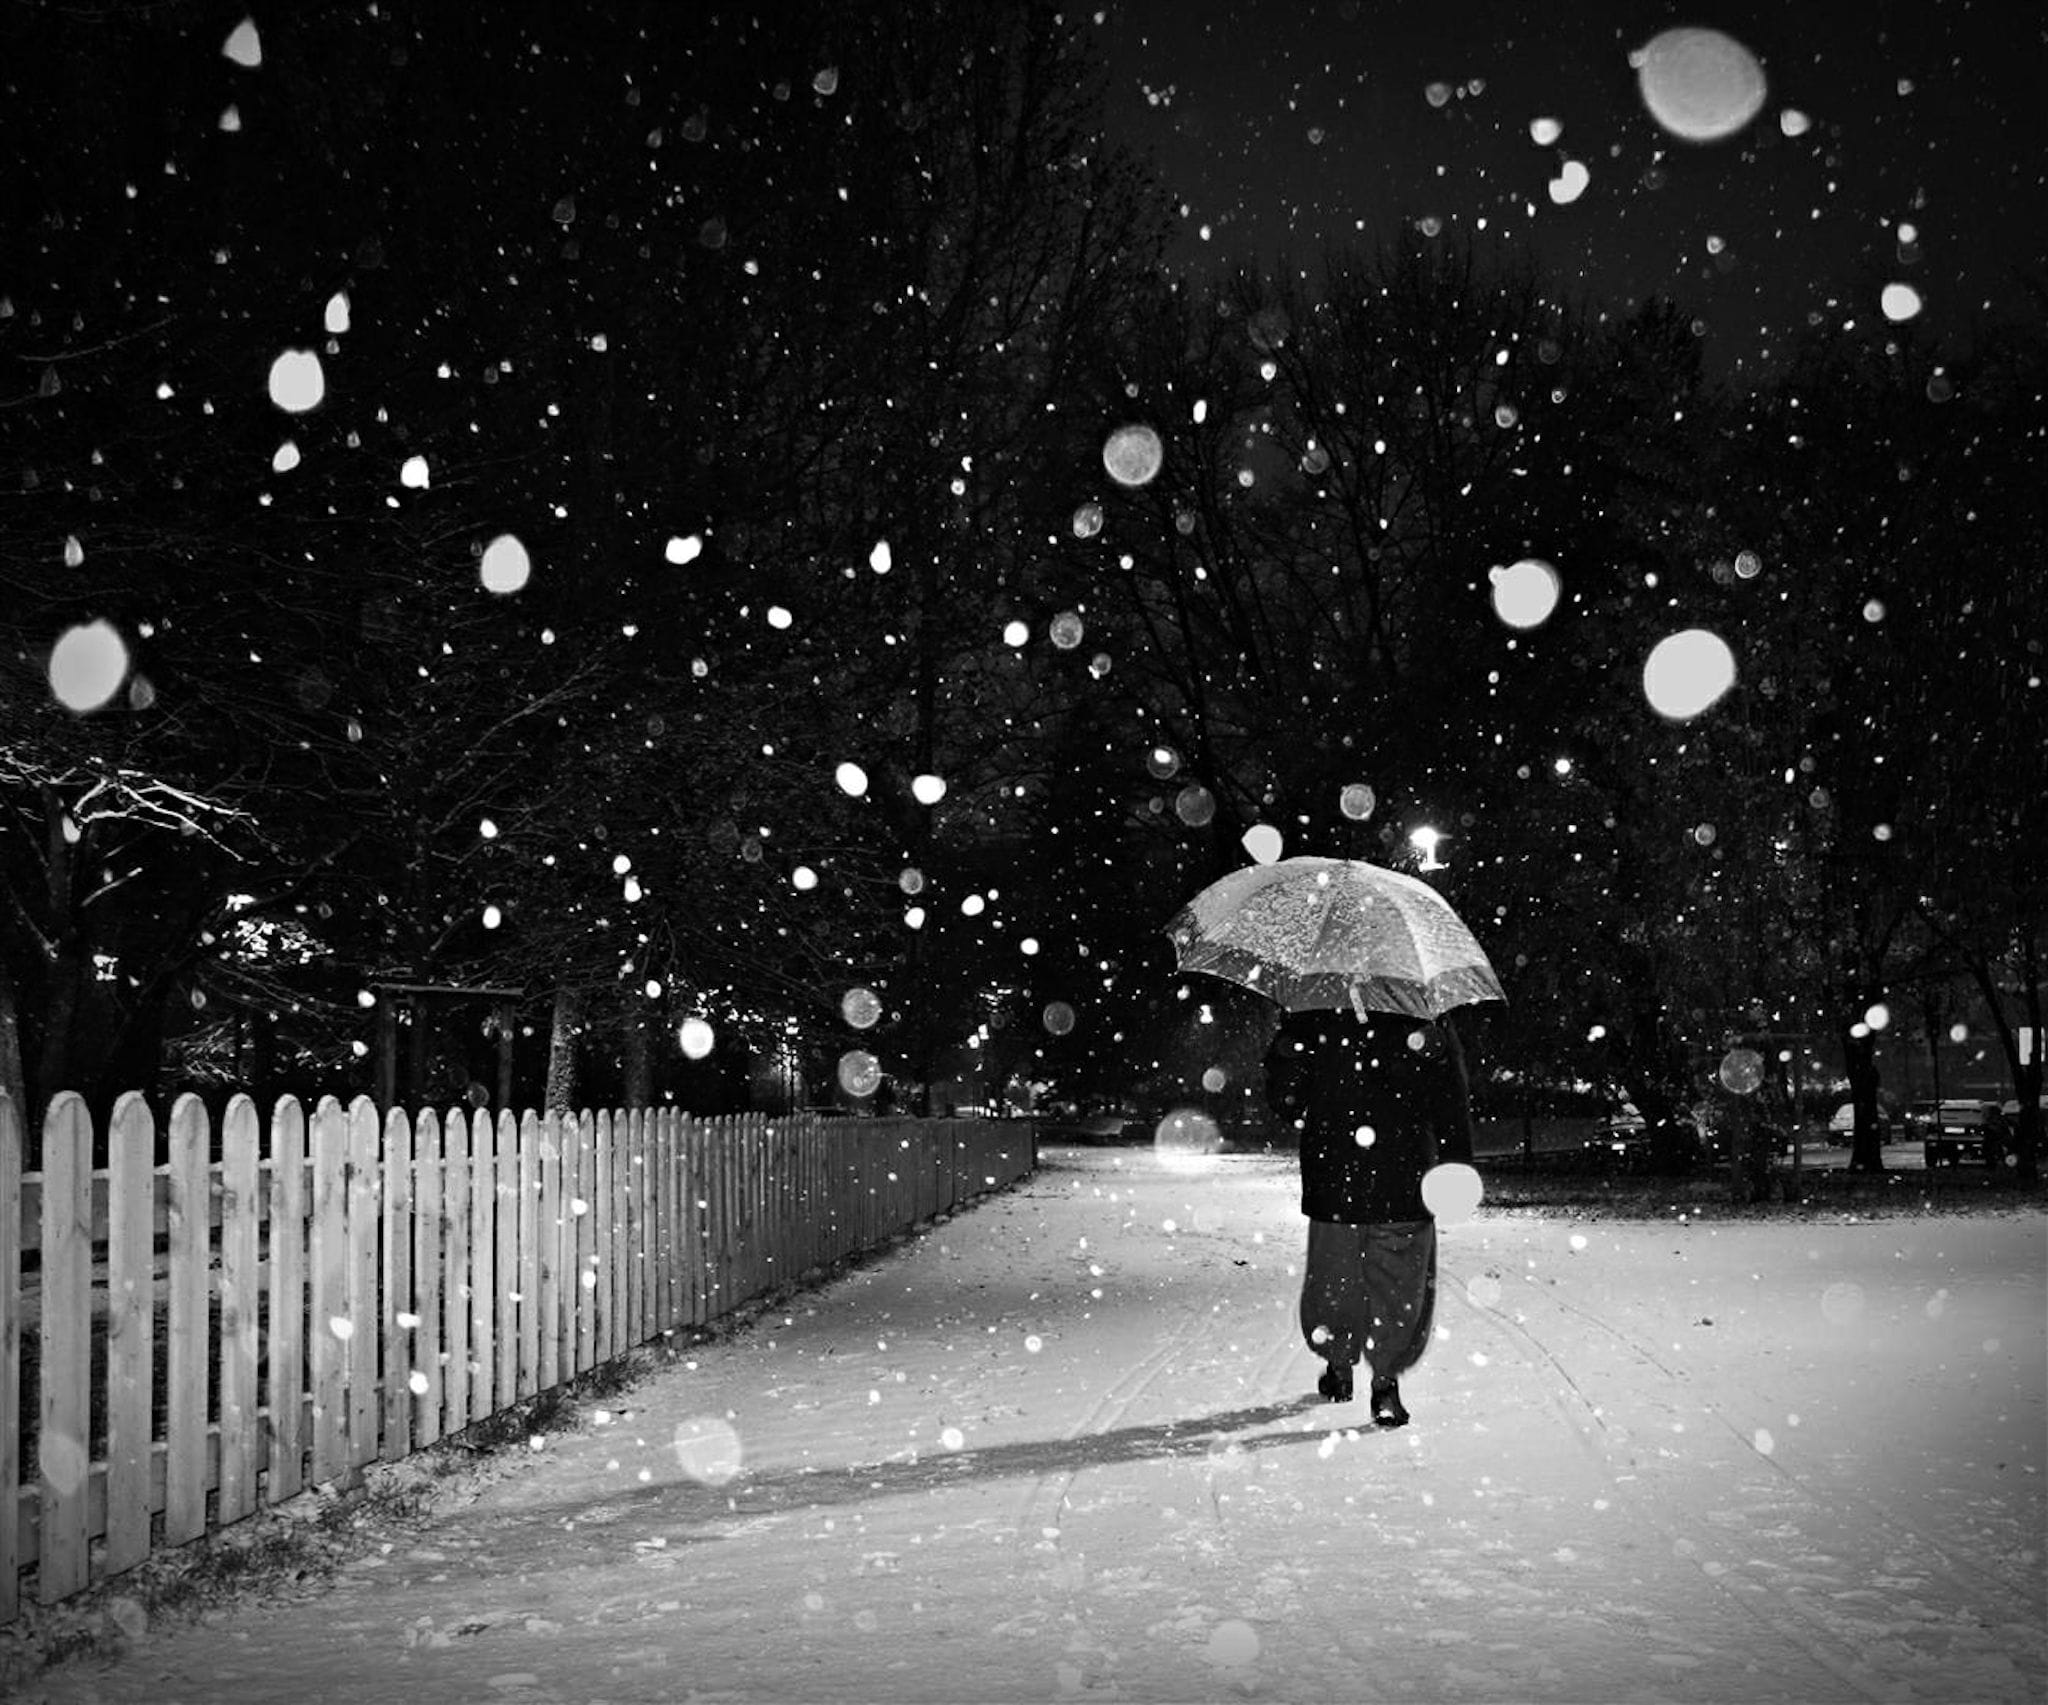 """Snowy day"" Street Photograph by Matteo Garzonio"